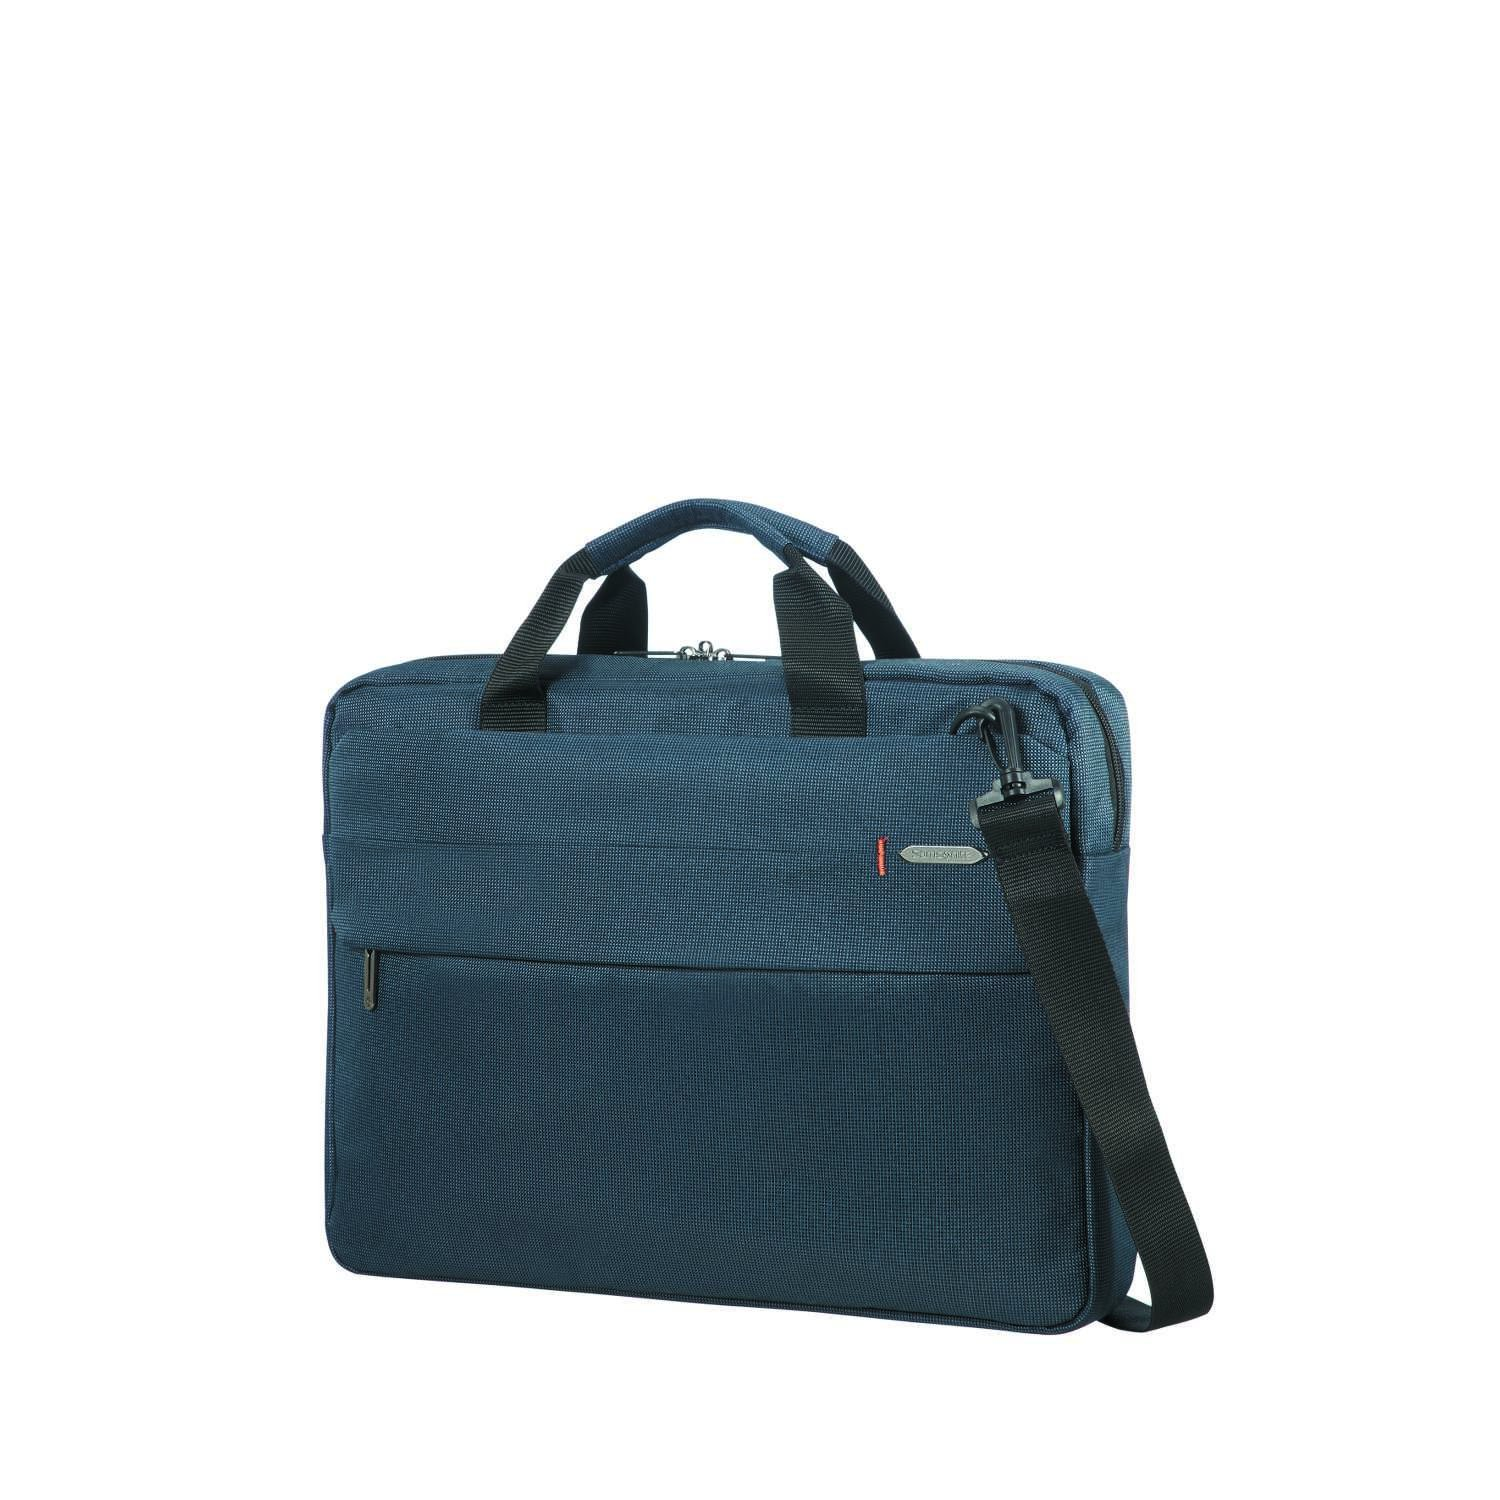 SAMSONITE Network 3 - Laptop Briefcase 17.3 Aktentasche, 44 cm, 15.5 L, Bottle Green 93060/4032